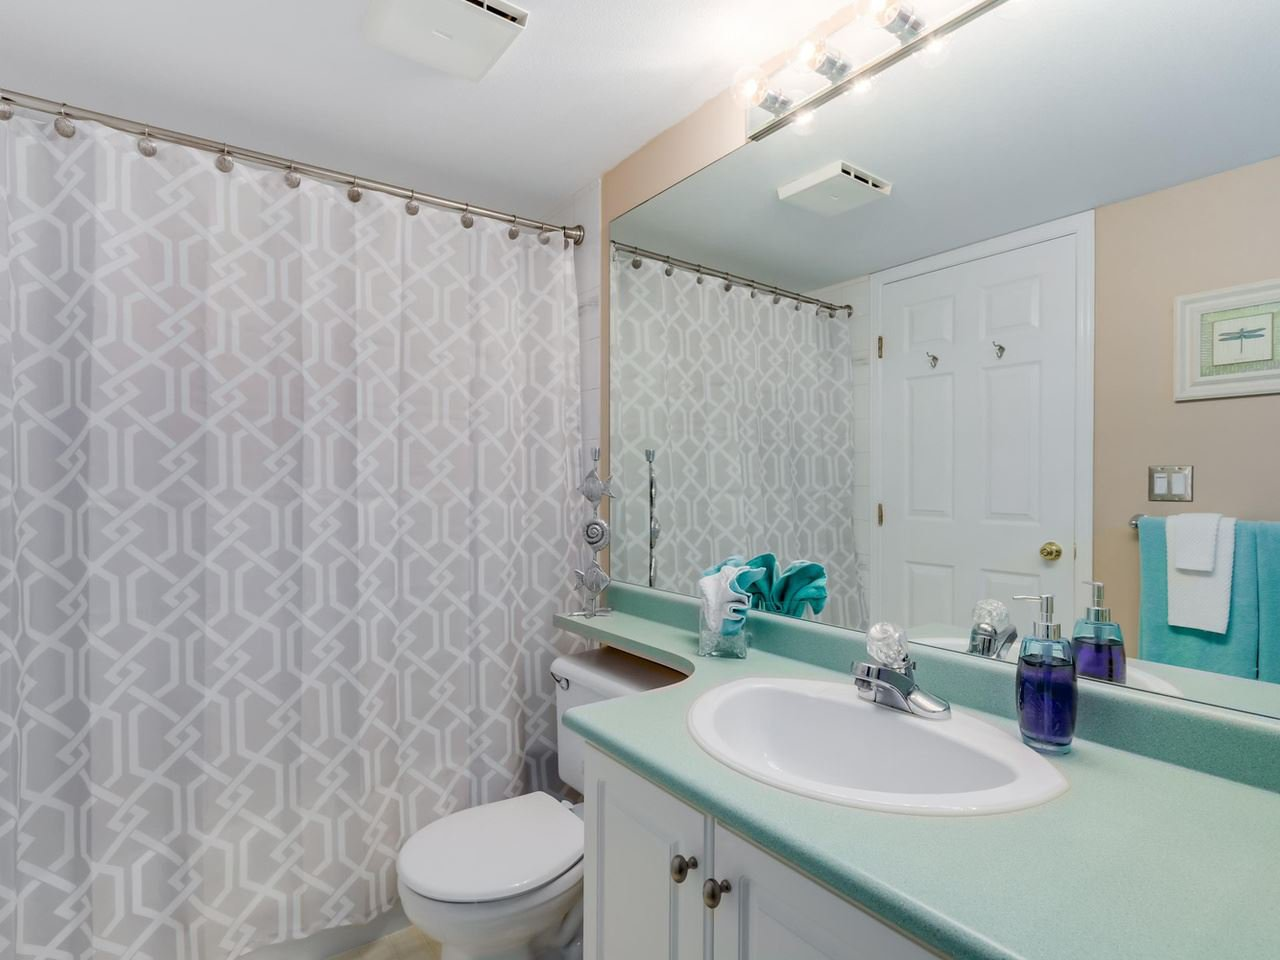 Photo 12: Photos: 107 515 WHITING Way in Coquitlam: Coquitlam West Condo for sale : MLS®# R2073119